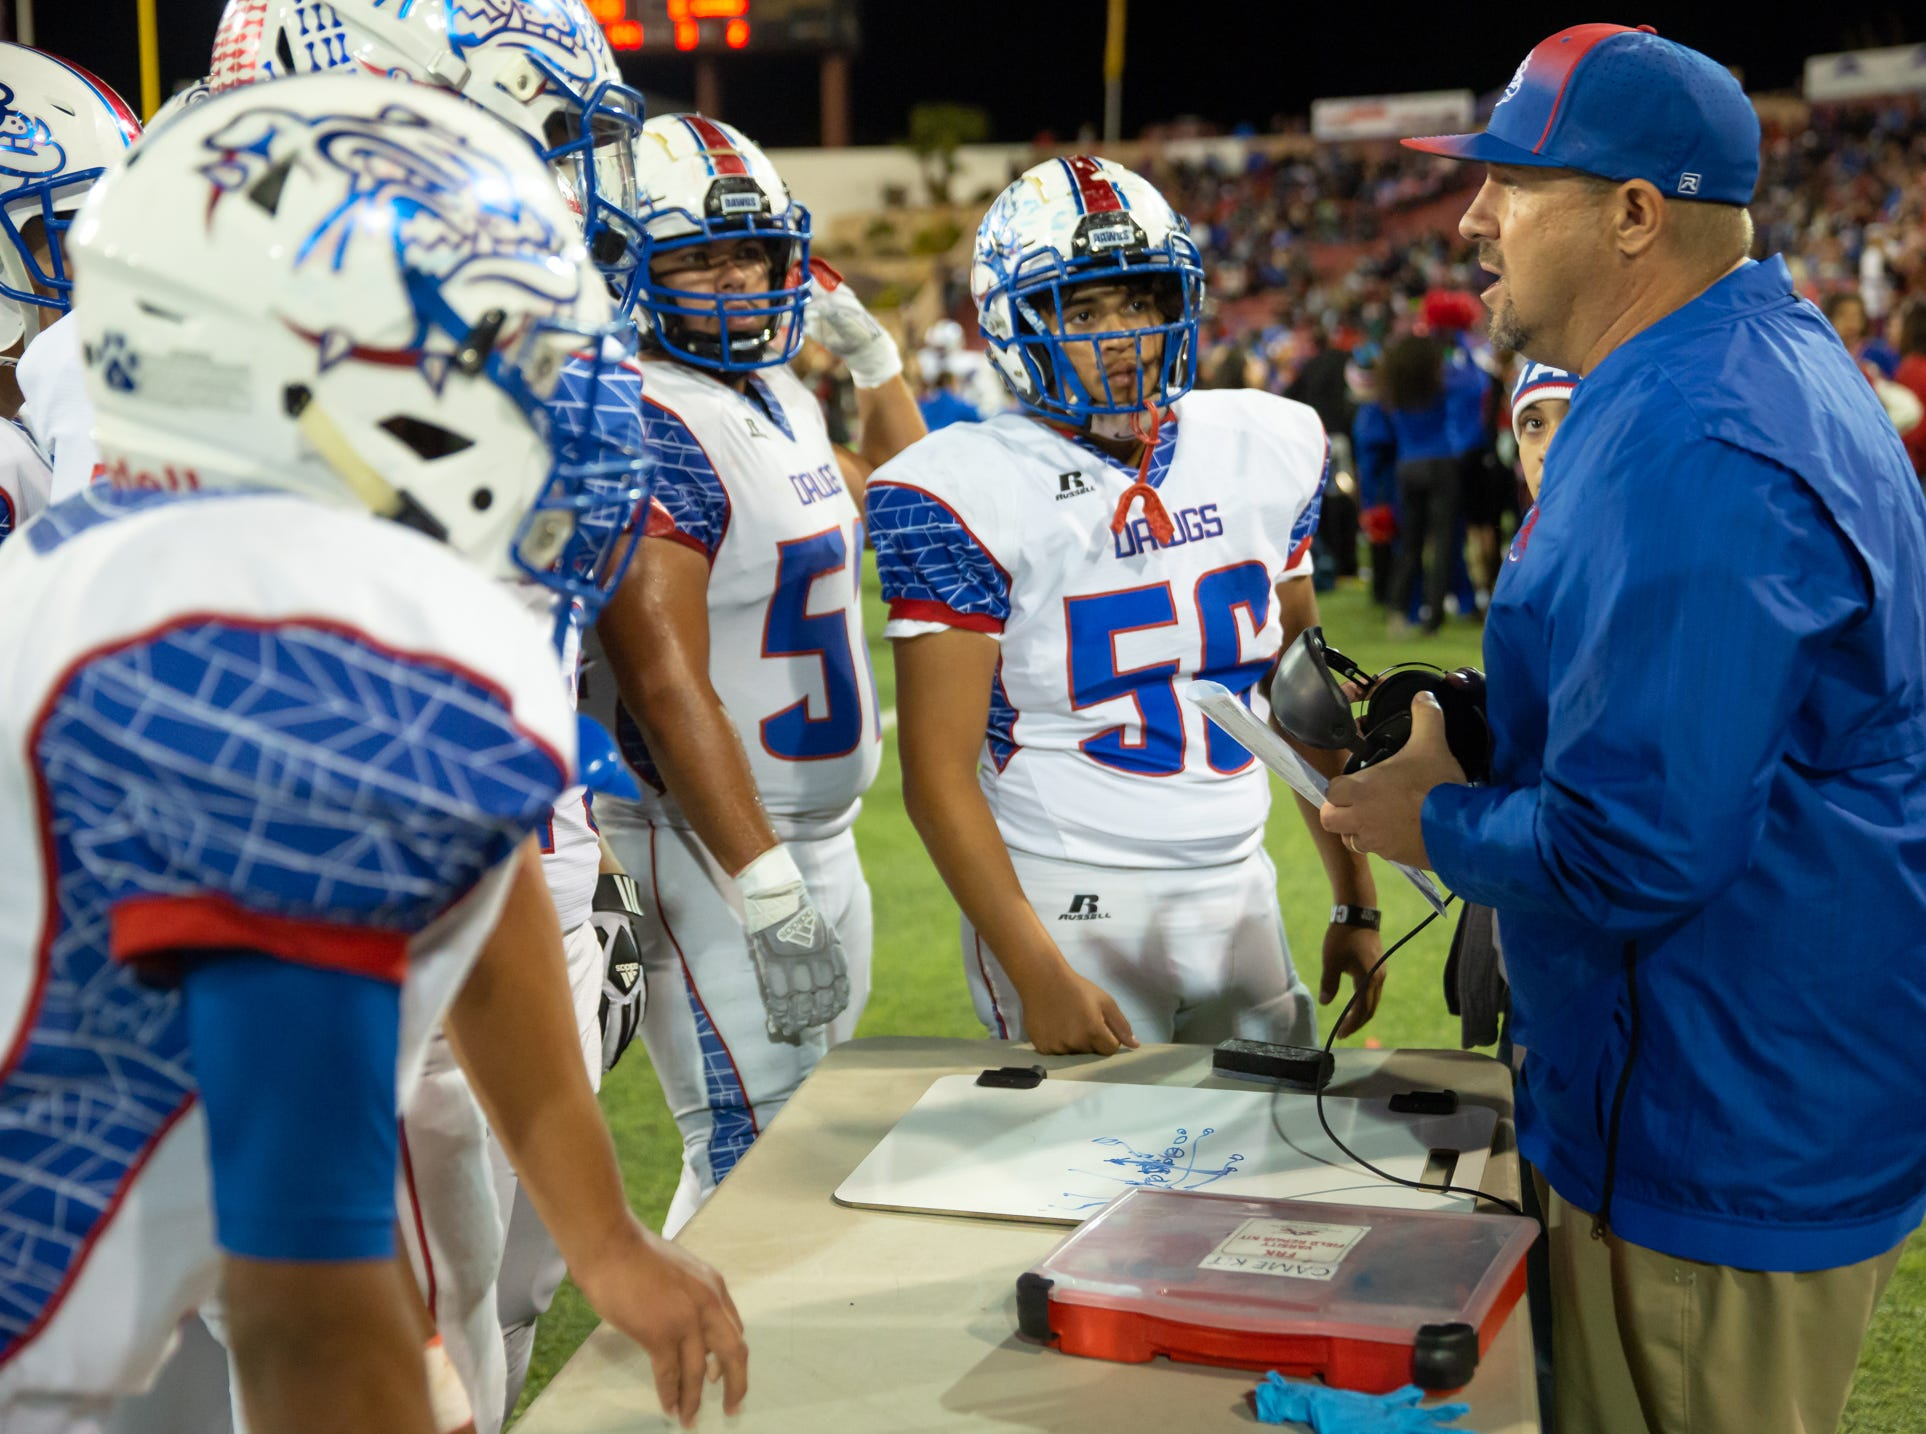 Las Cruces High School Head Football Coach Mark Lopez, works with his players on the sideline during the Cruces/Mayfield football game on Friday, Nov. 2, 2018, at Aggie Memorial Stadium.